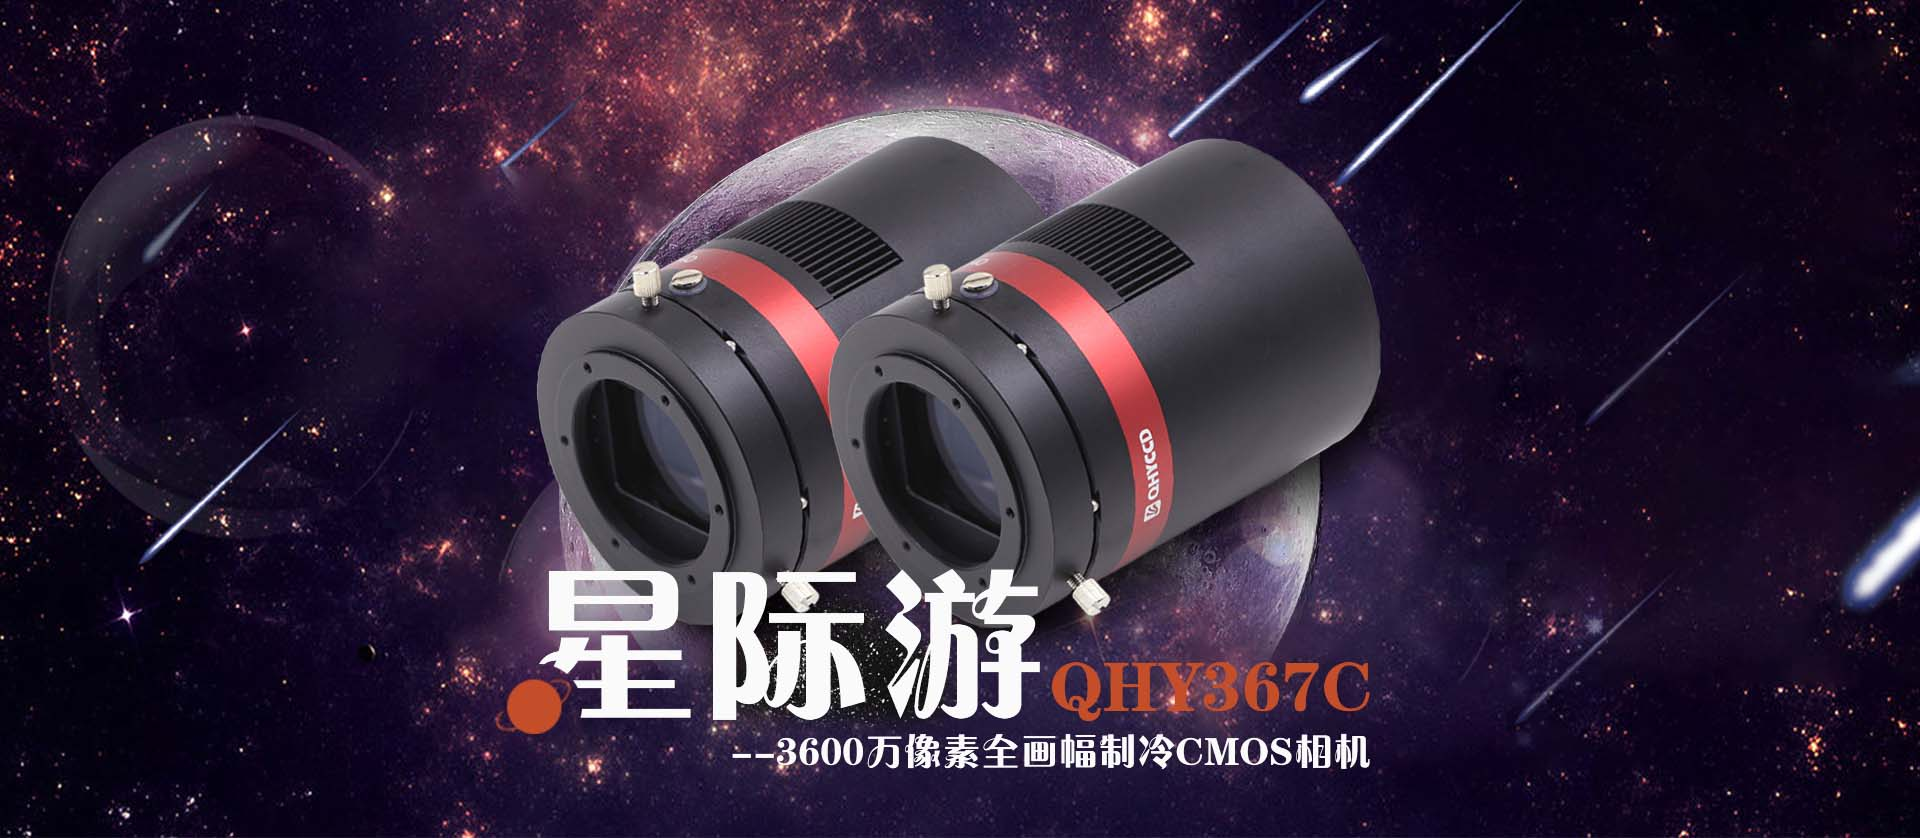 QHY411 scientific camera with the sony IMX411 BSI sensor